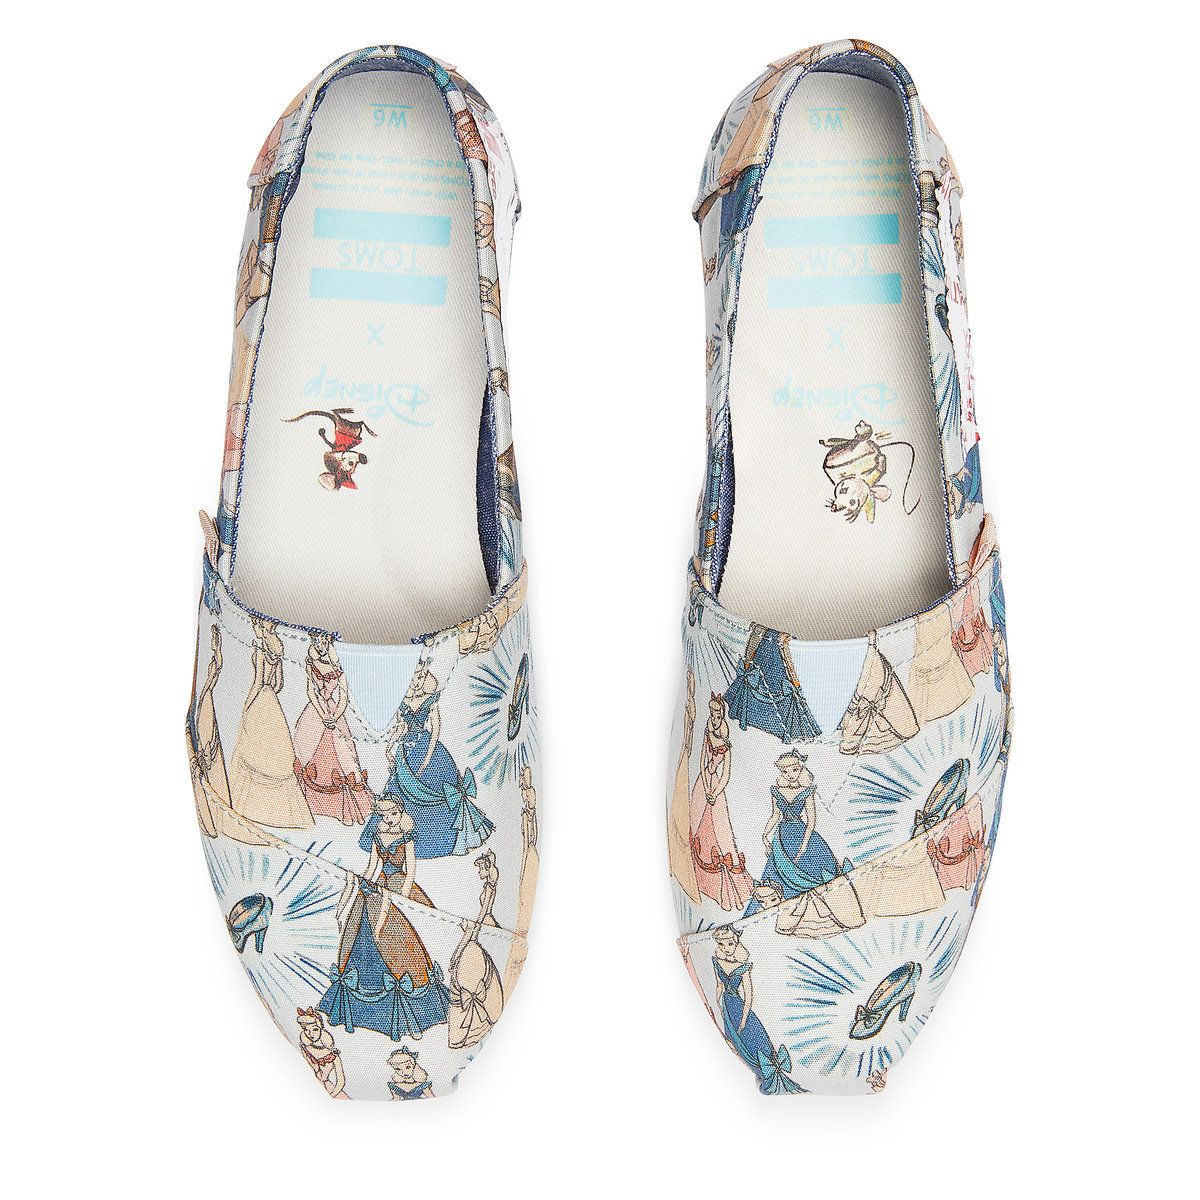 2446aedc385 Product Image of Cinderella Alpargatas Shoes for Women by TOMS   2